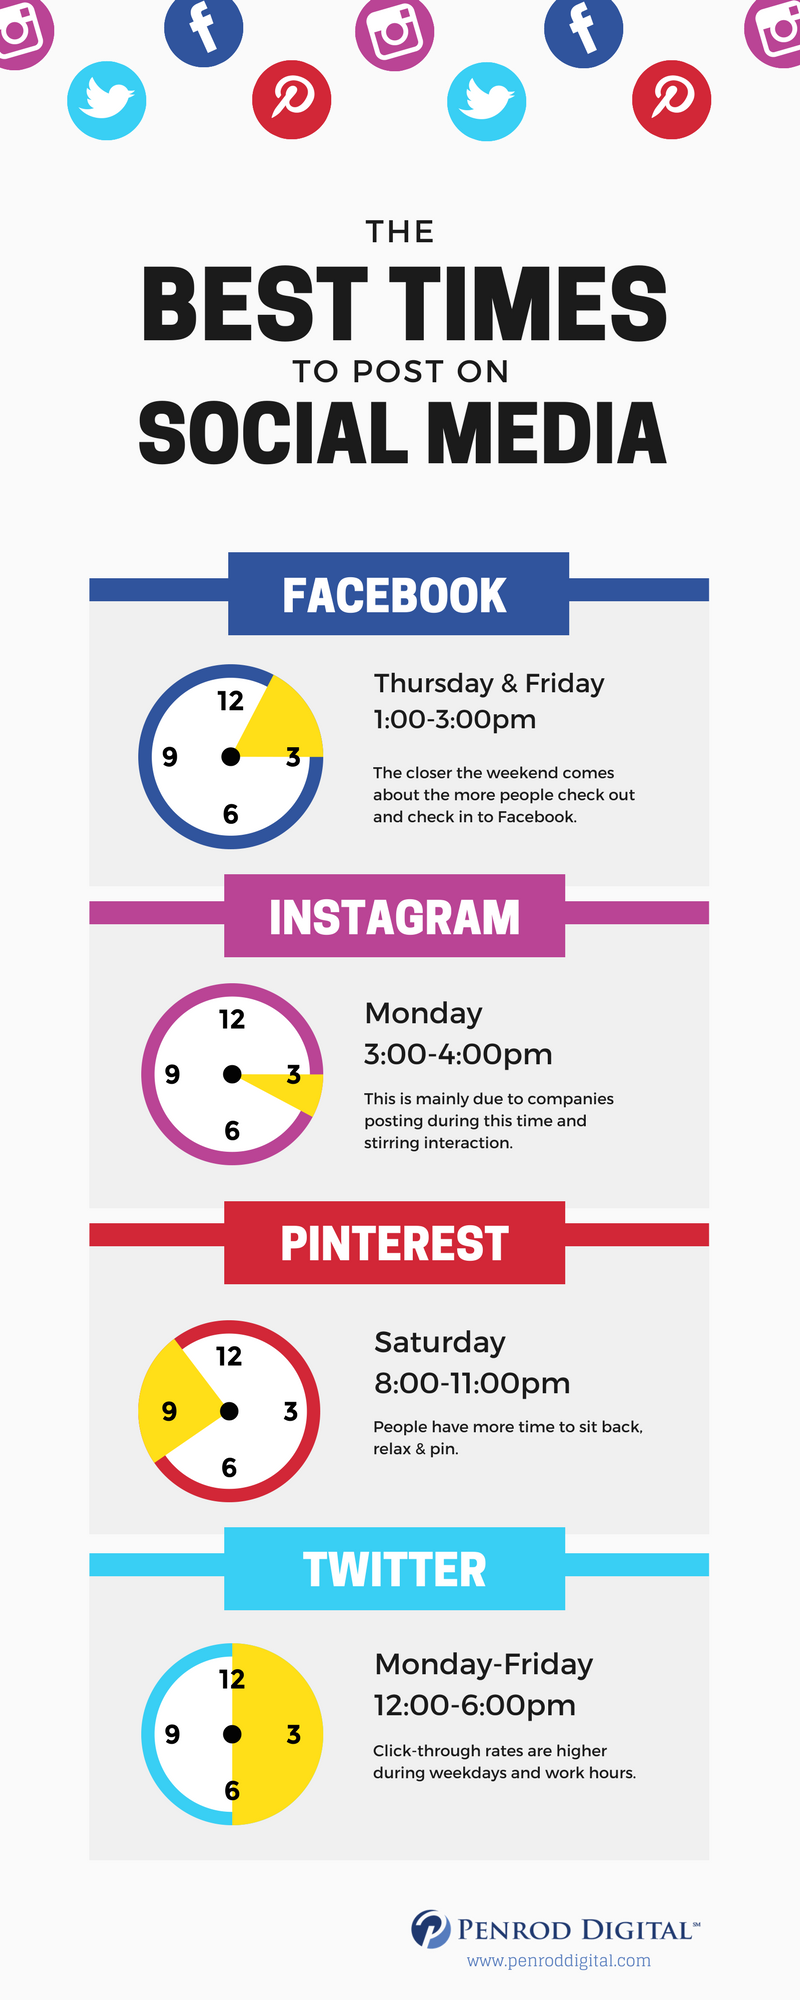 The best times to post on social media - infographic.